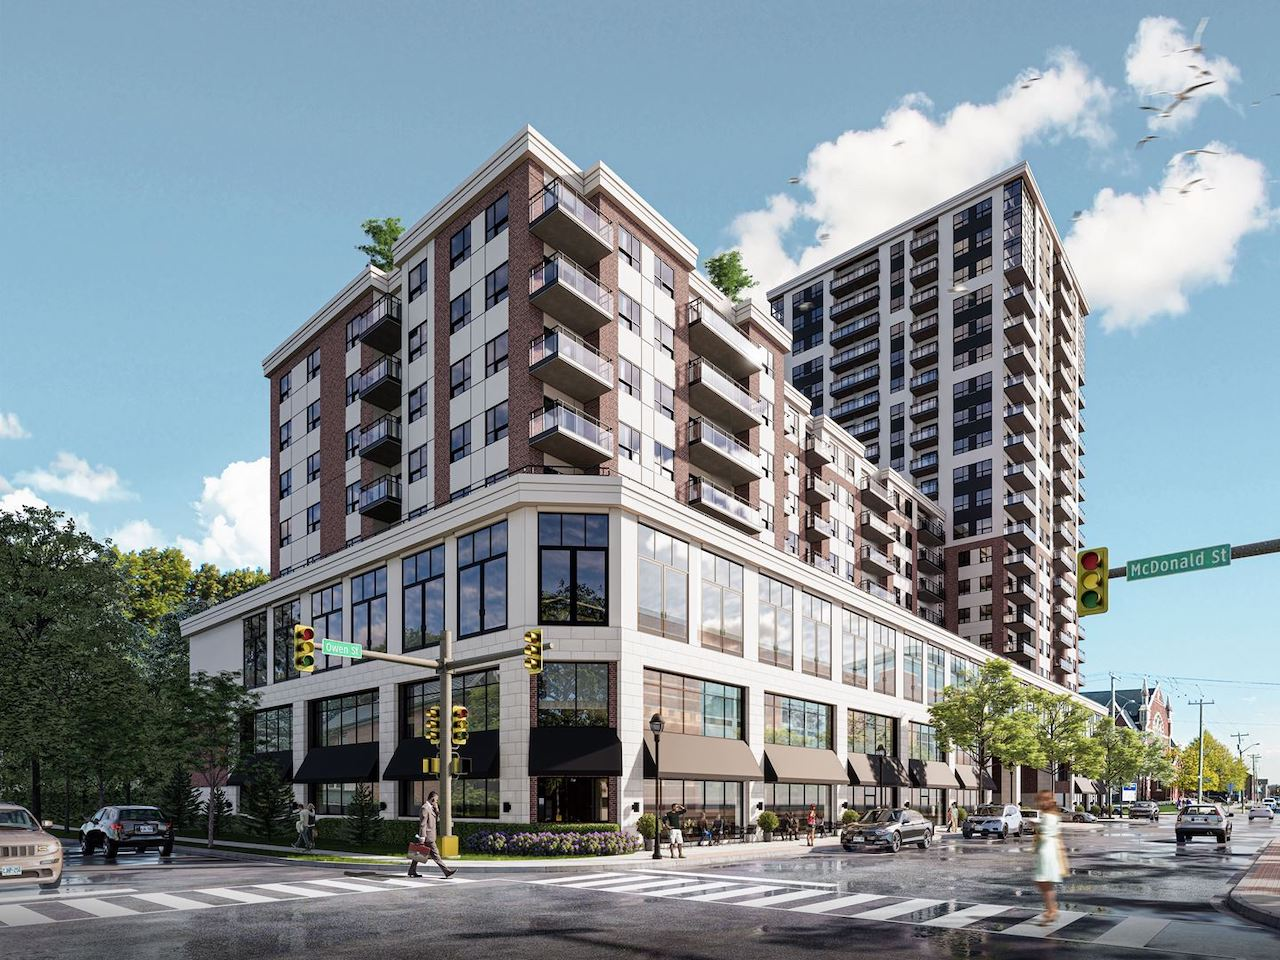 Rendering of The Residences On Owen exterior and streetview